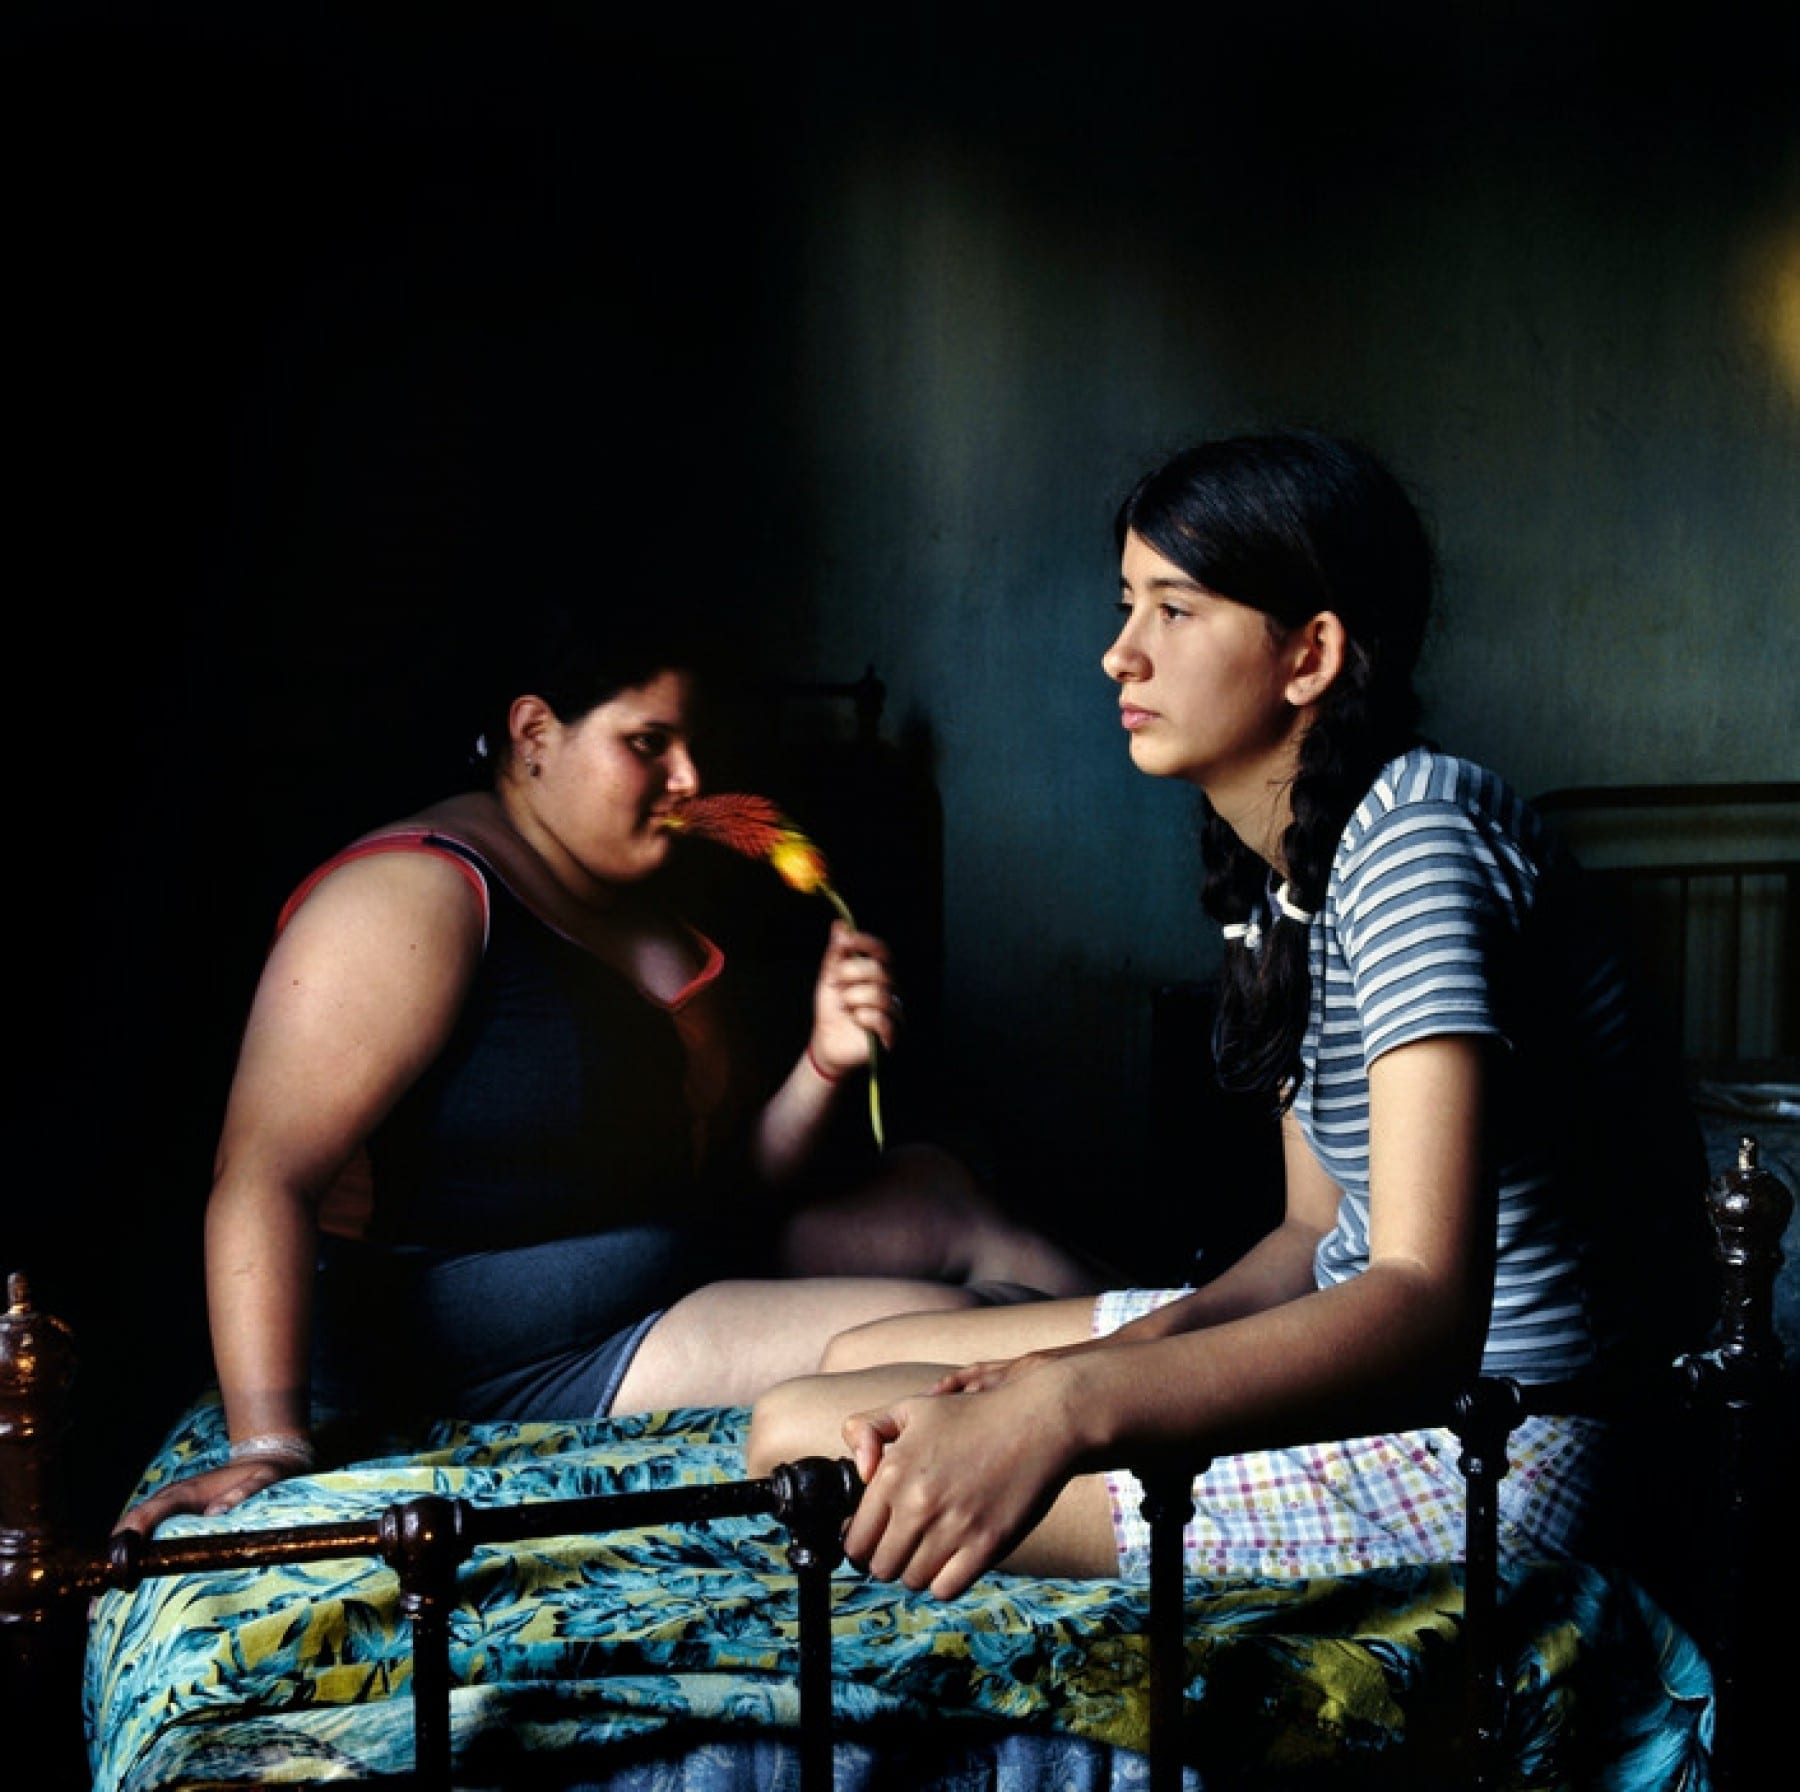 Two kids sitting on a bed, Buenos Aires, Argentina, 2004 by photographer Alessandra Sanguinetti